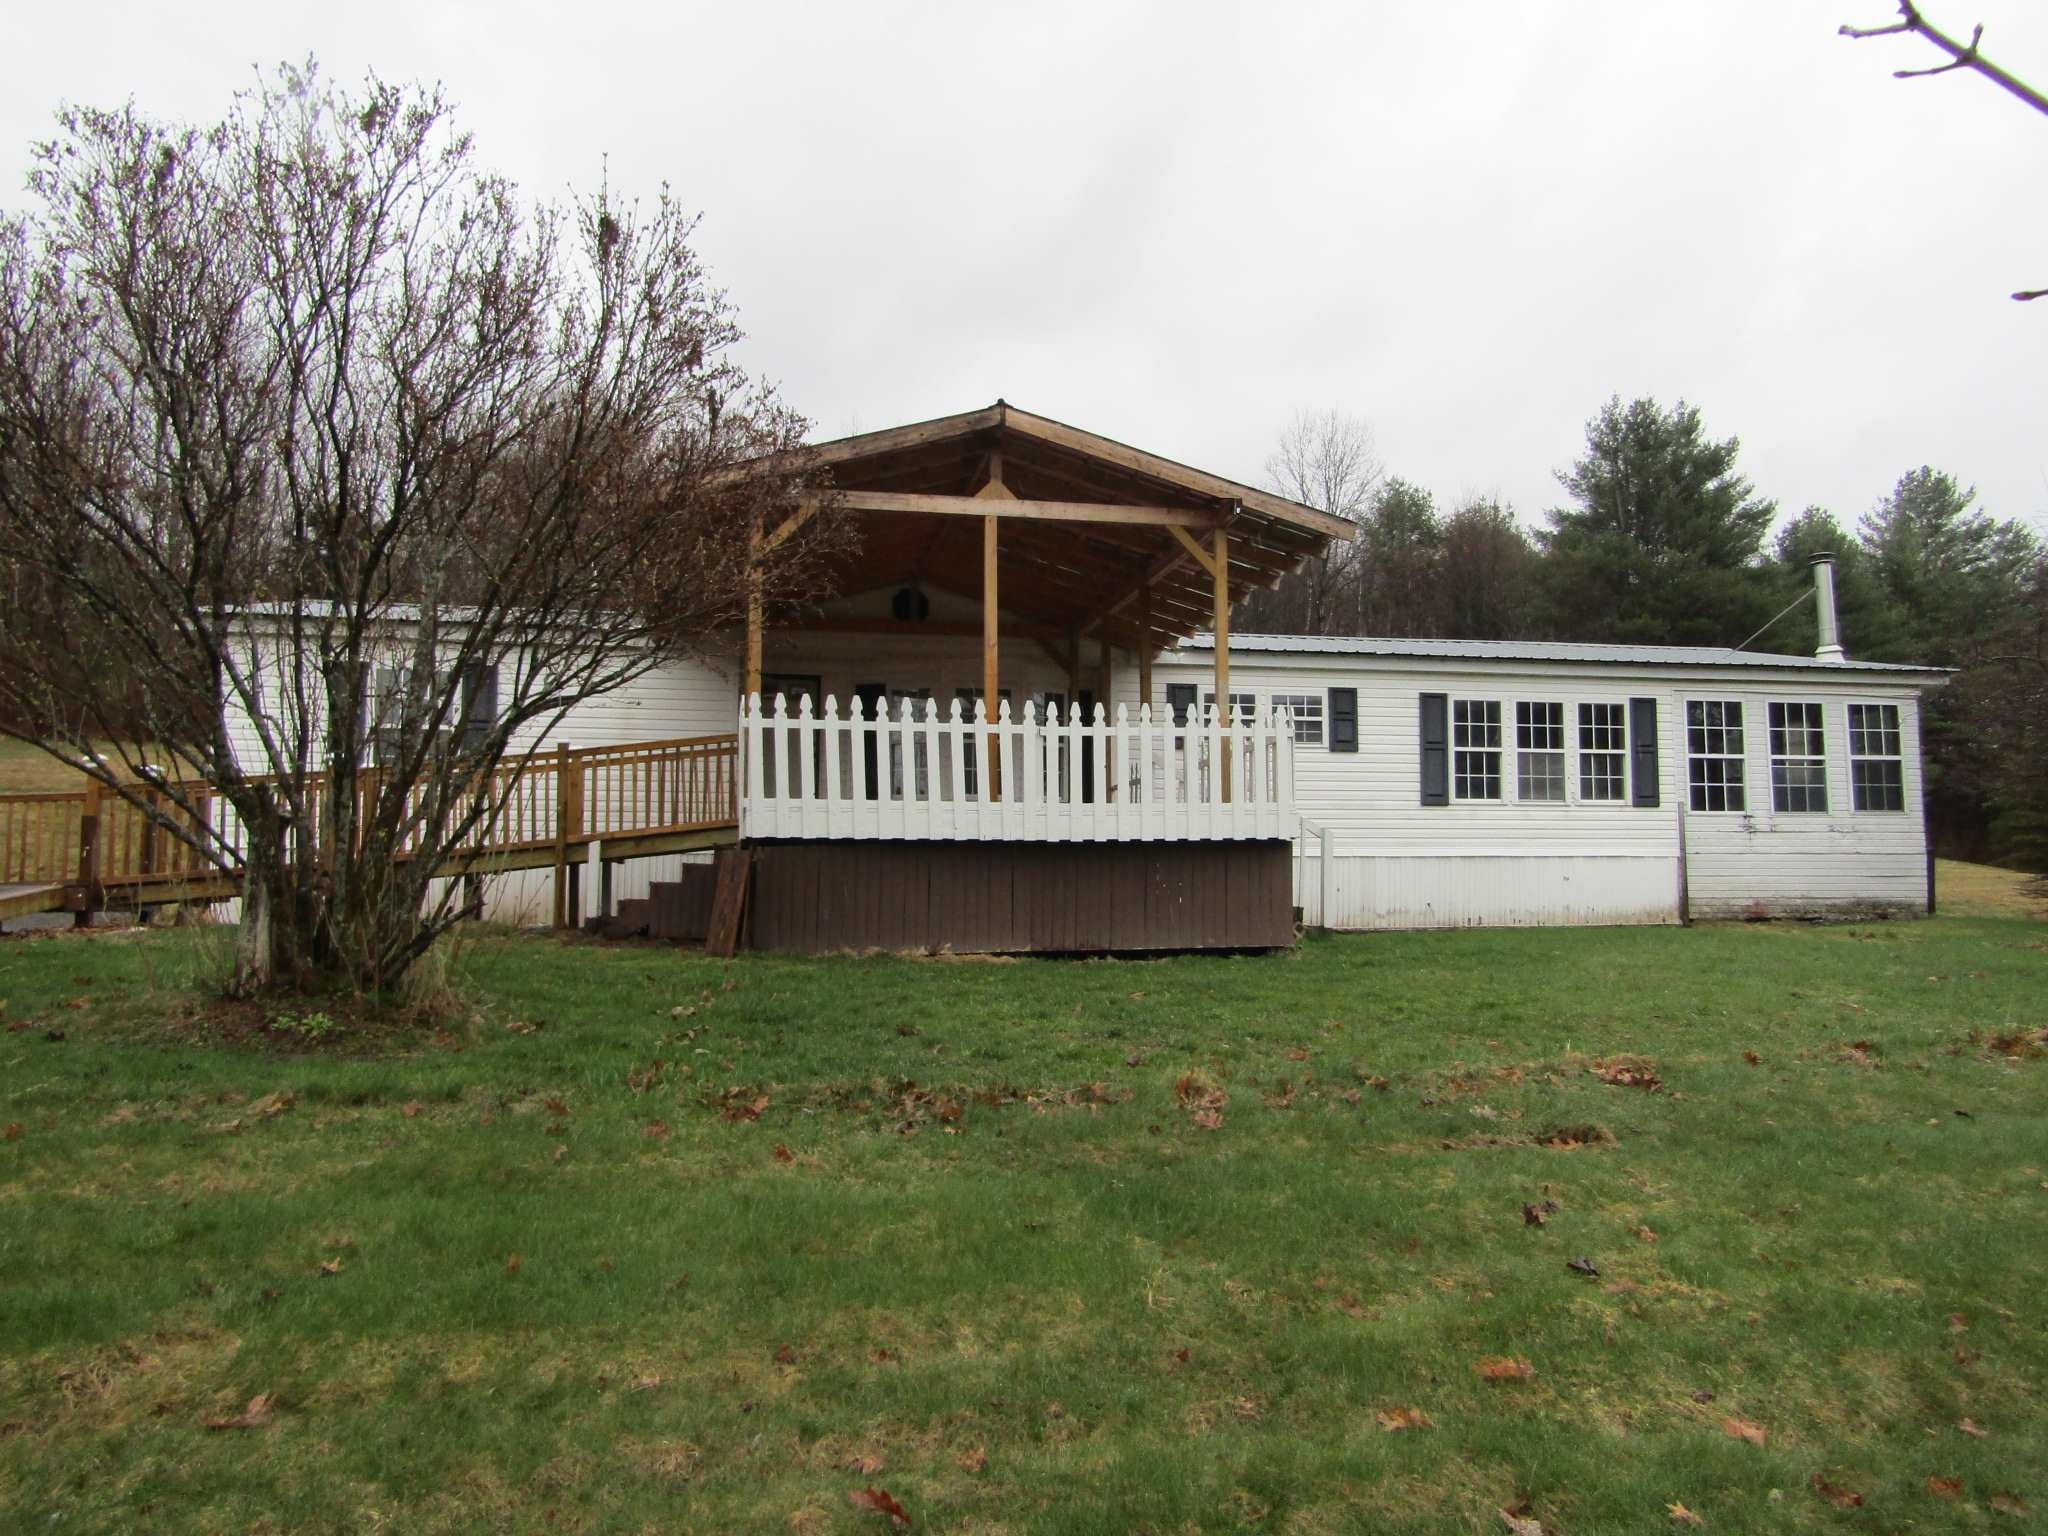 LYME NH Homes for sale